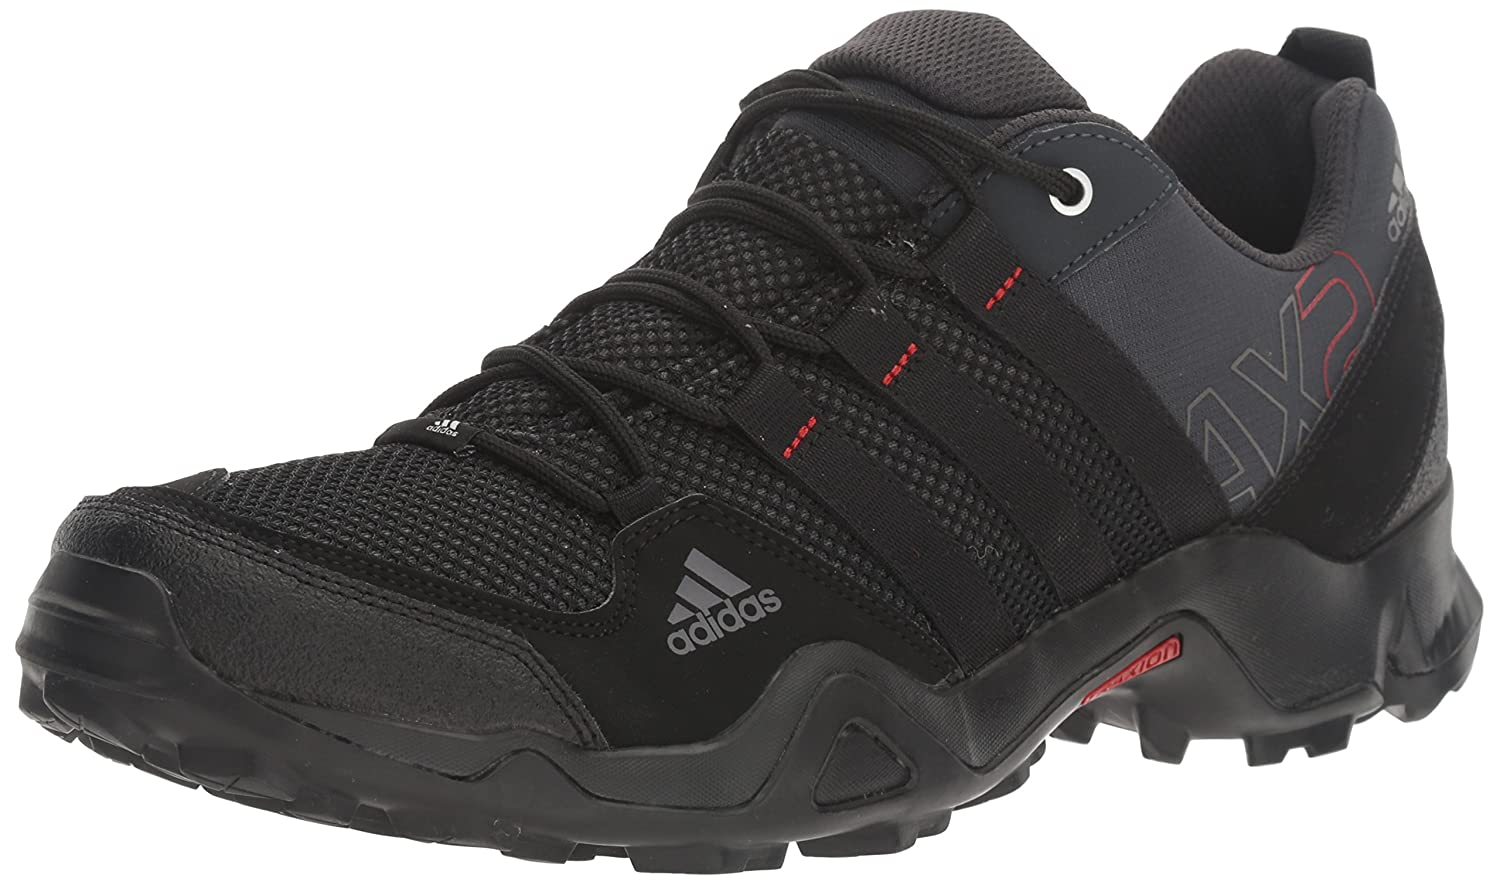 adidas outdoor Men's Ax2 Hiking Shoe B00DQZ5DMG 6.5 D(M) US|Dark Shale/Black/Light Scarlet